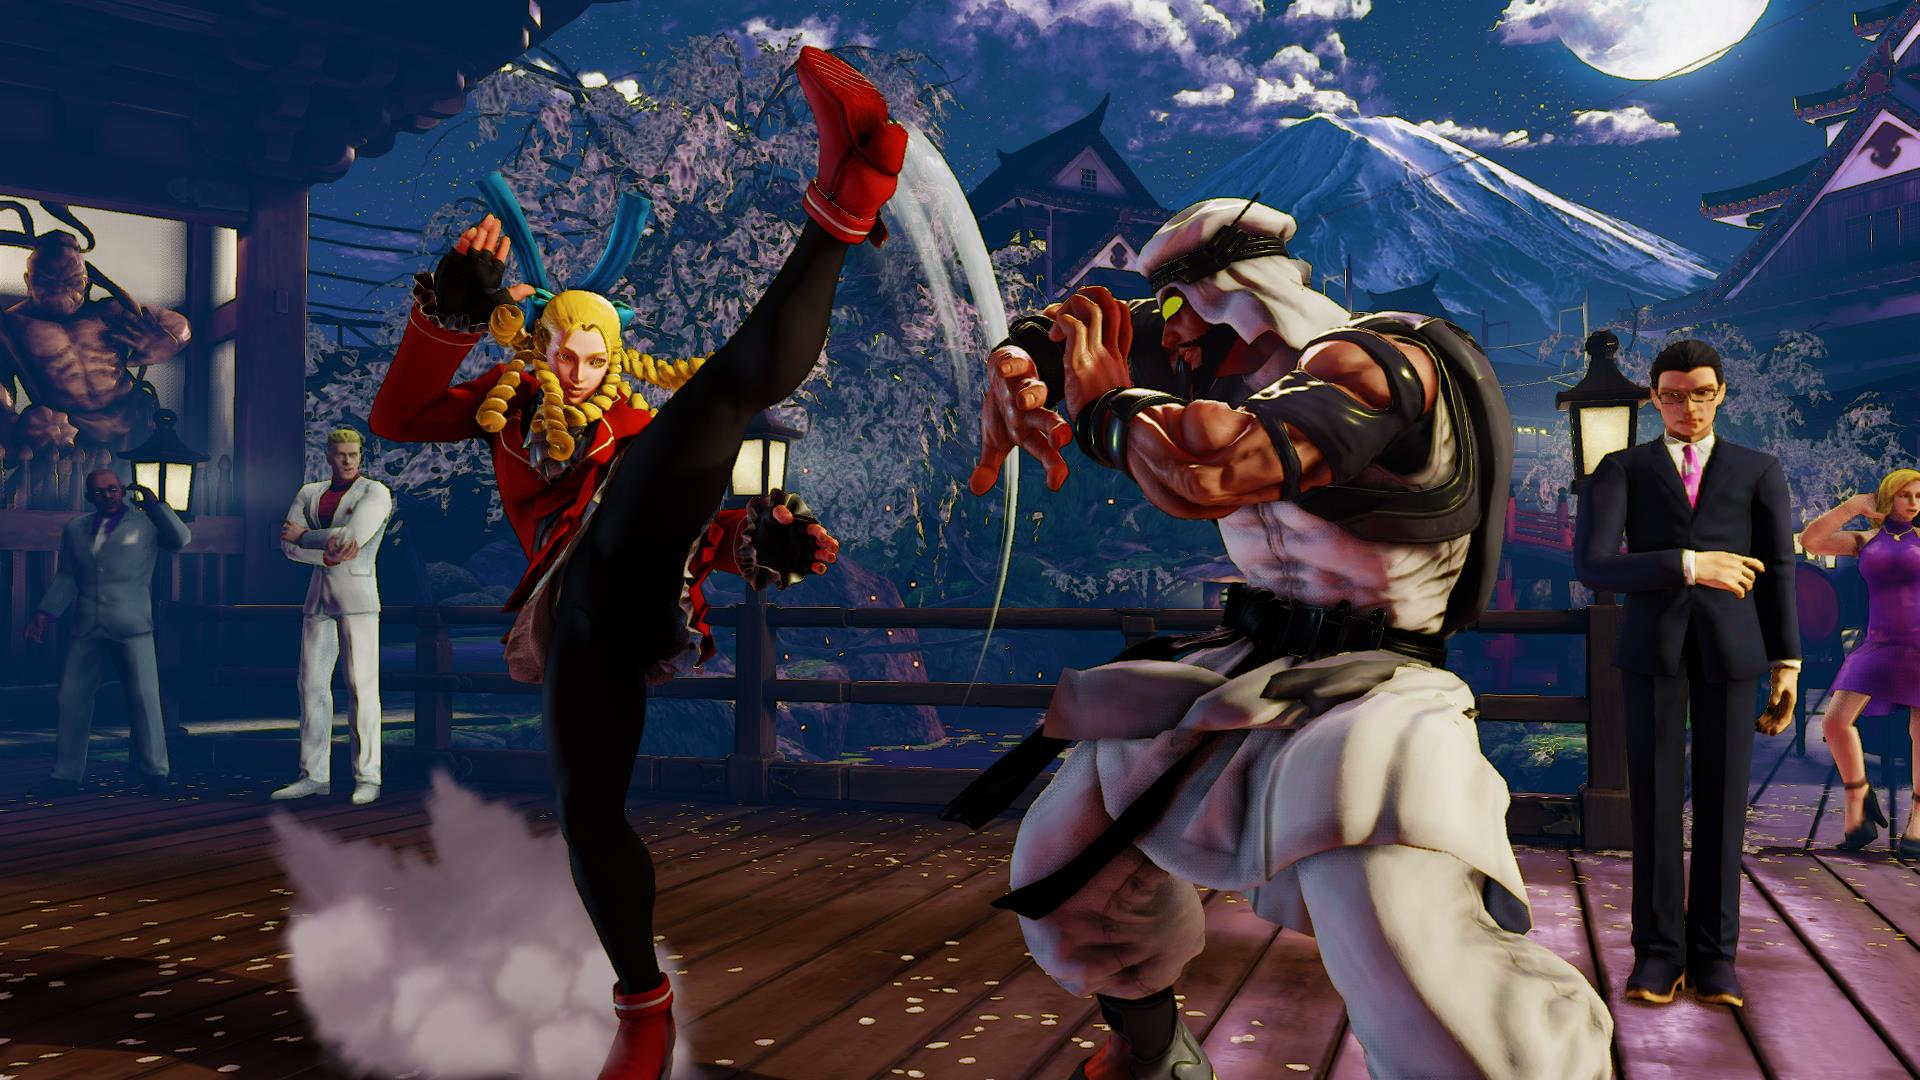 Second Street Fighter 5 beta dated, will test PC and PS4